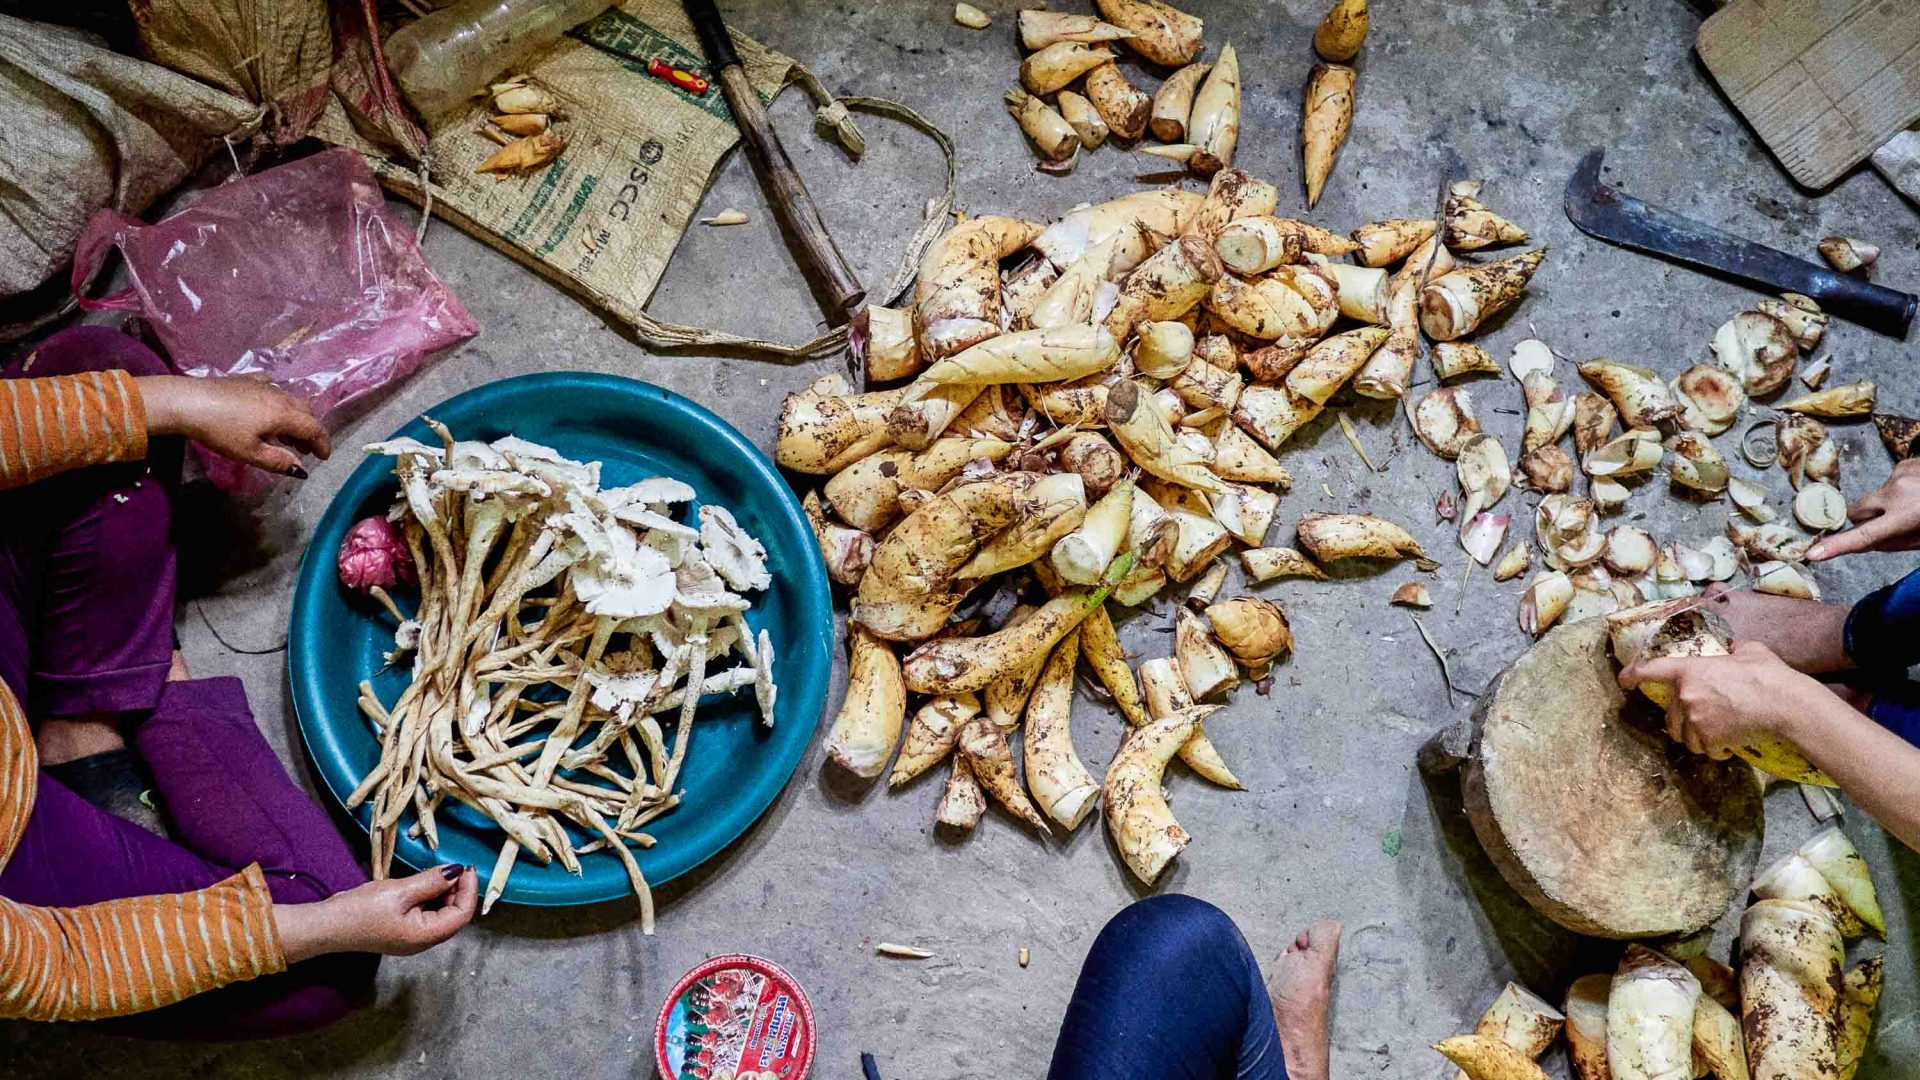 Mushrooms and other foraged food in Laos.